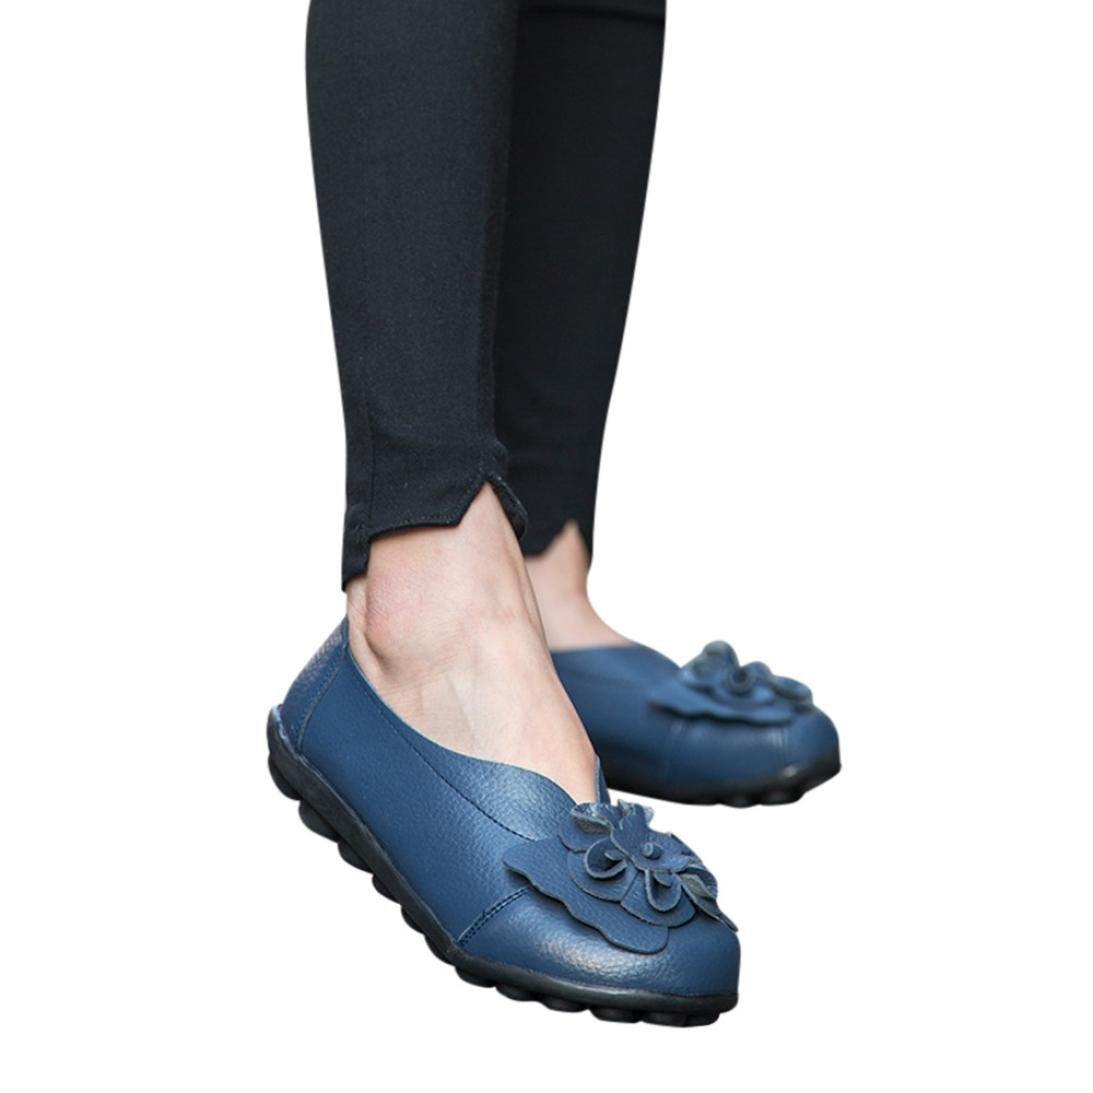 Neartime Women Single Shoes, 2018 Fashion Leather Flats Flower Sandals Round Toe Slip-On Casual Slipper Soft Shoes